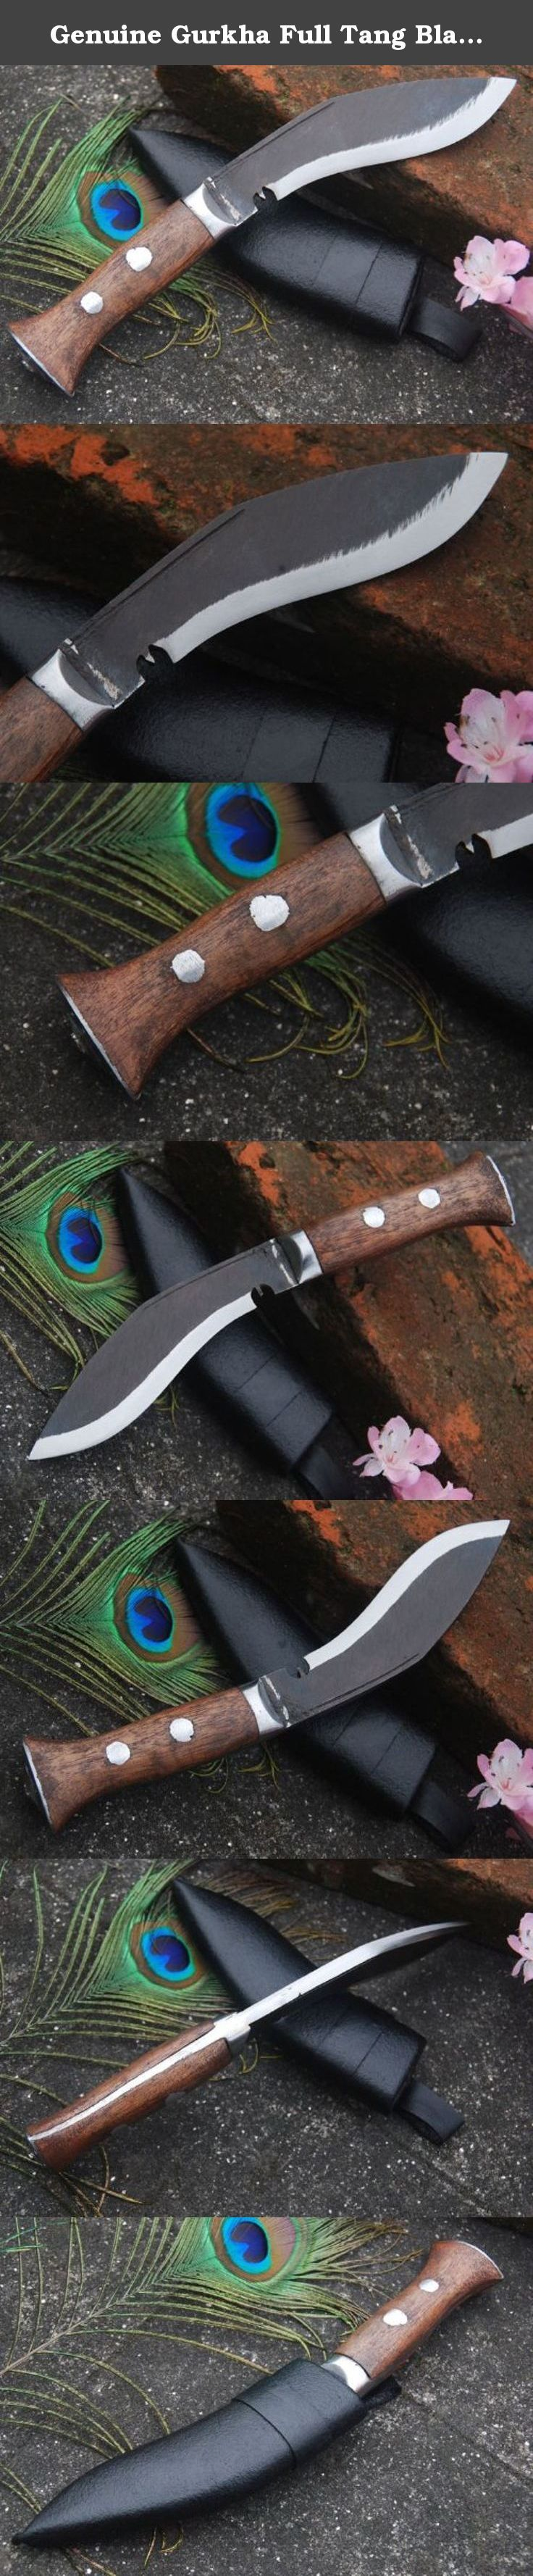 "Genuine Gurkha Full Tang Blade Kukri Knife - 5"" Blade Panawal Rust Free Angkhola Kitchen Kukri - Handmade By Ex Gurkha Khukuri House in Nepal. 5"" Blade Panawal Rust Free Angkhola Kitchen Khukuri Full Tang Handle Kukri. This is smallest steel blade khukuri and is used for cutting vegetables and meet at kitchen. You can use it as pocket knife for small tasks. This khukuri is named 'Biltong',which has come from south African customer because it is a very popular knife for south Africans…"